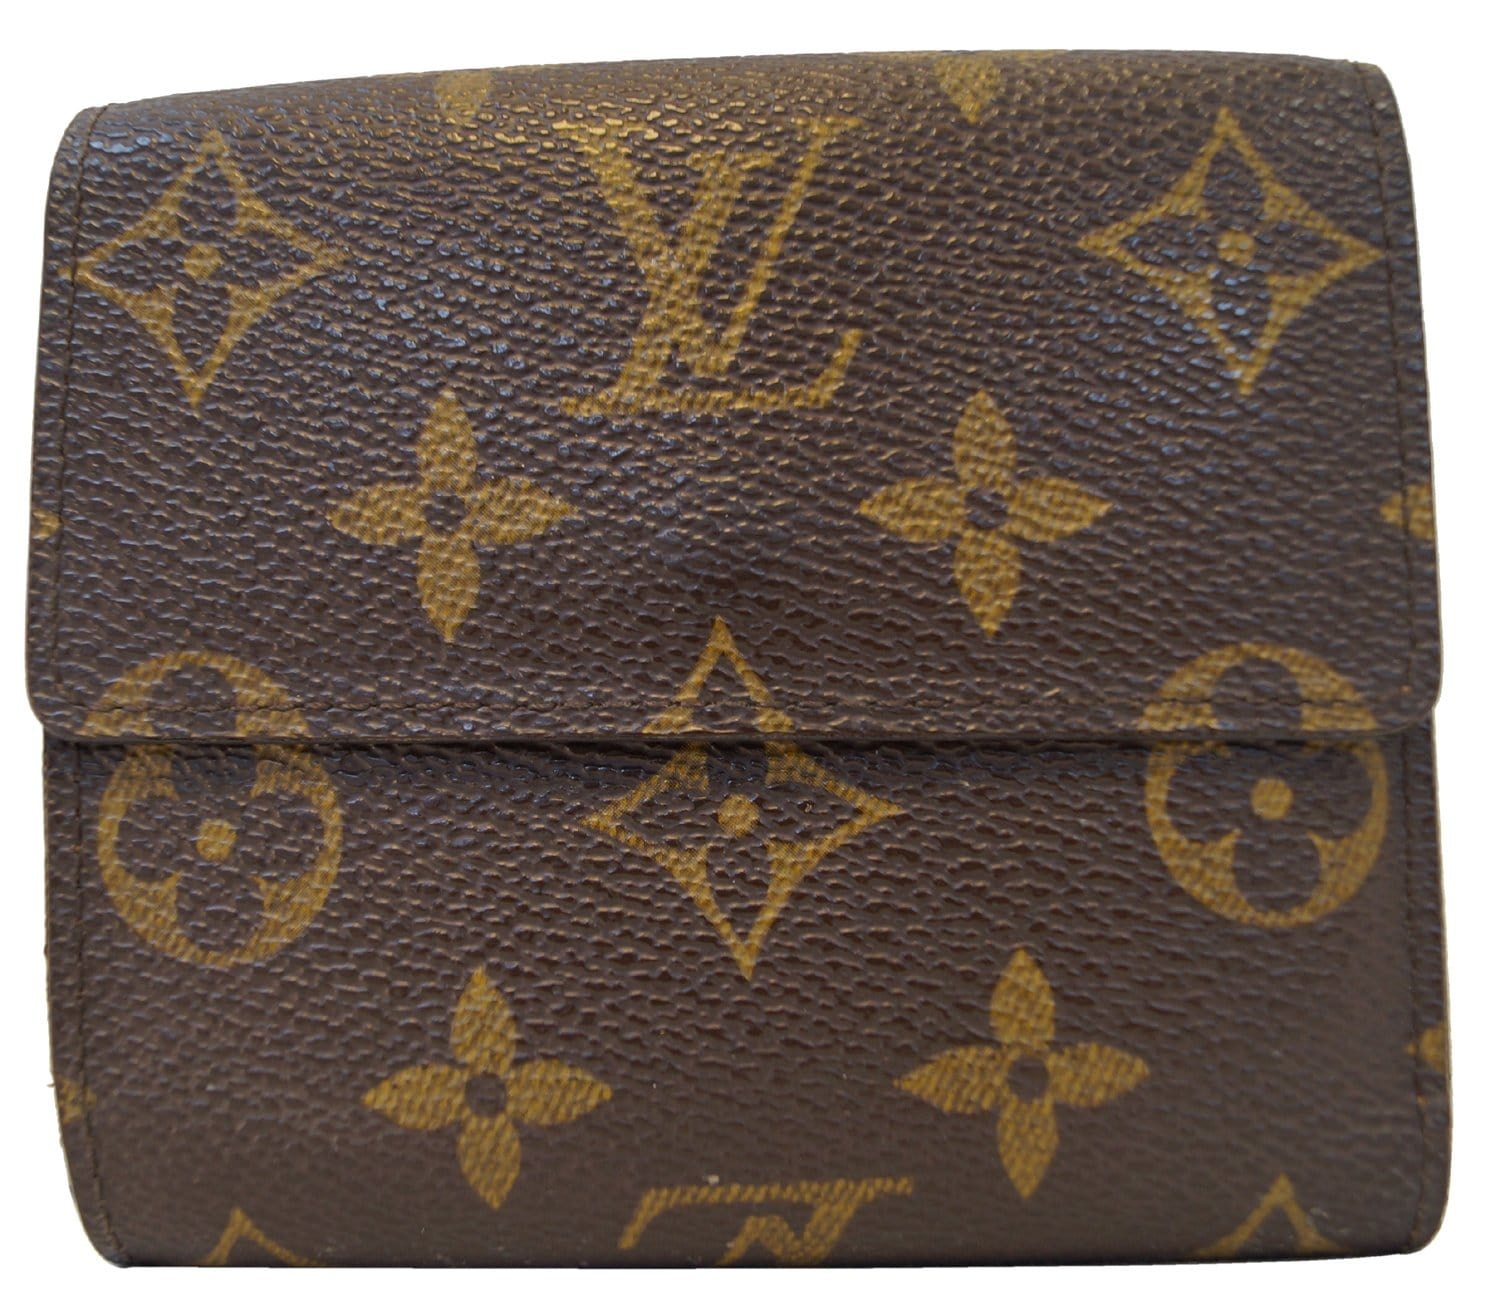 Authentic LOUIS VUITTON Monogram Canvas Portefeuille Elise Wallet TT14 c3be417c6d037